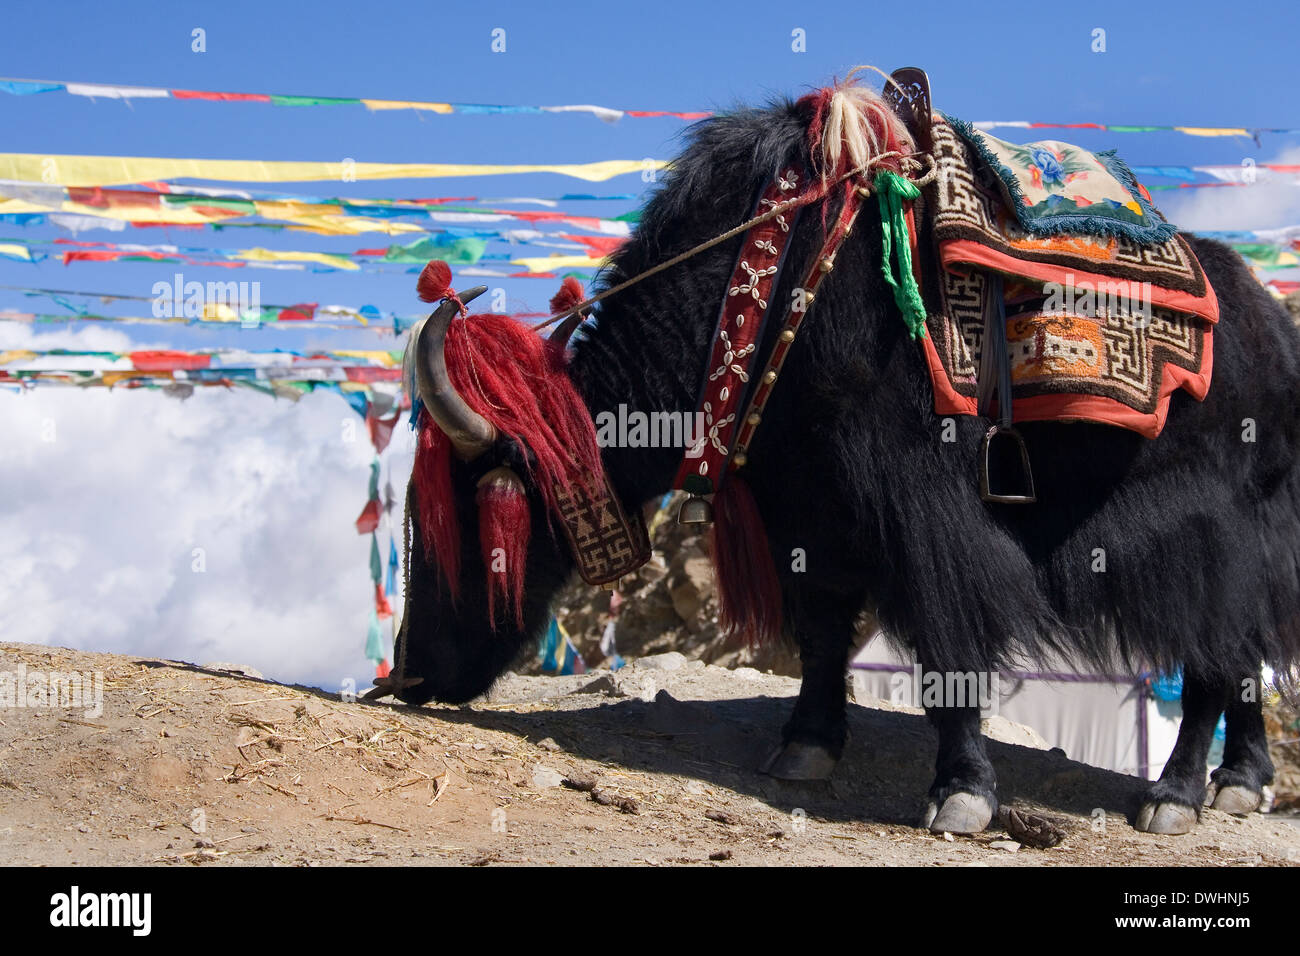 A domesticated yak near Gyantse in the Tibet Autonomous Region of China. - Stock Image